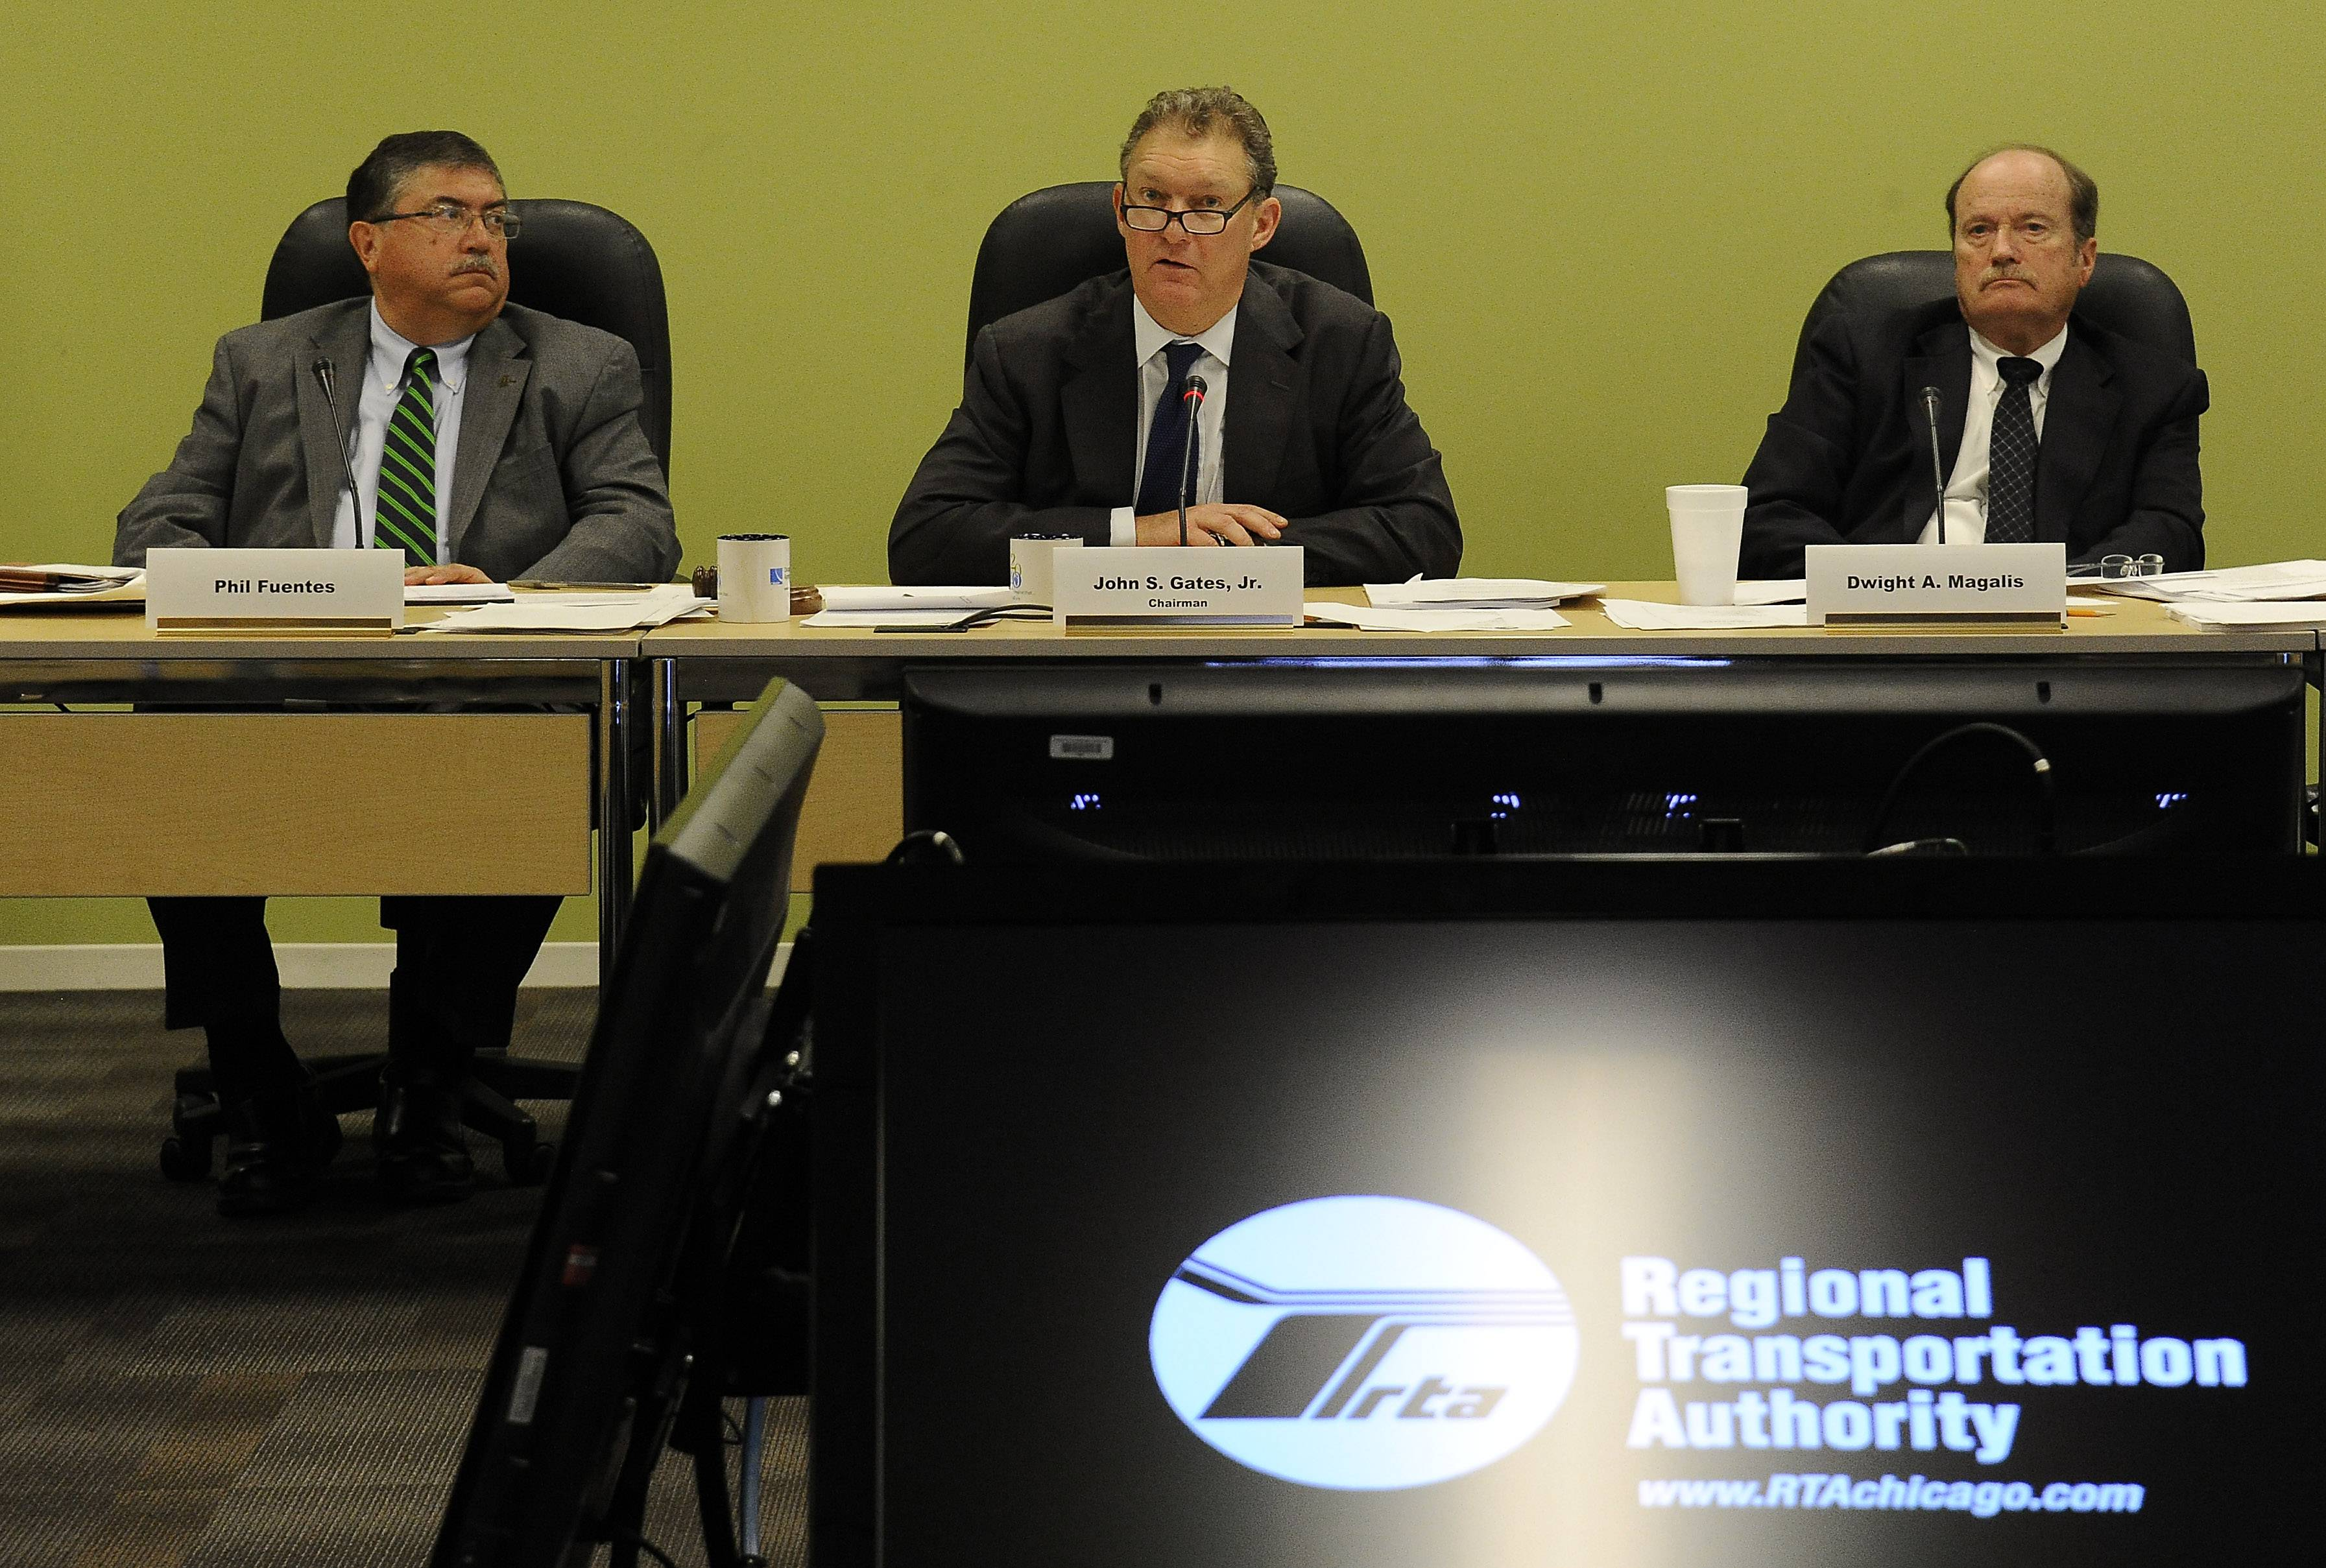 The RTA board will be voting on a $5 million ad campaign.